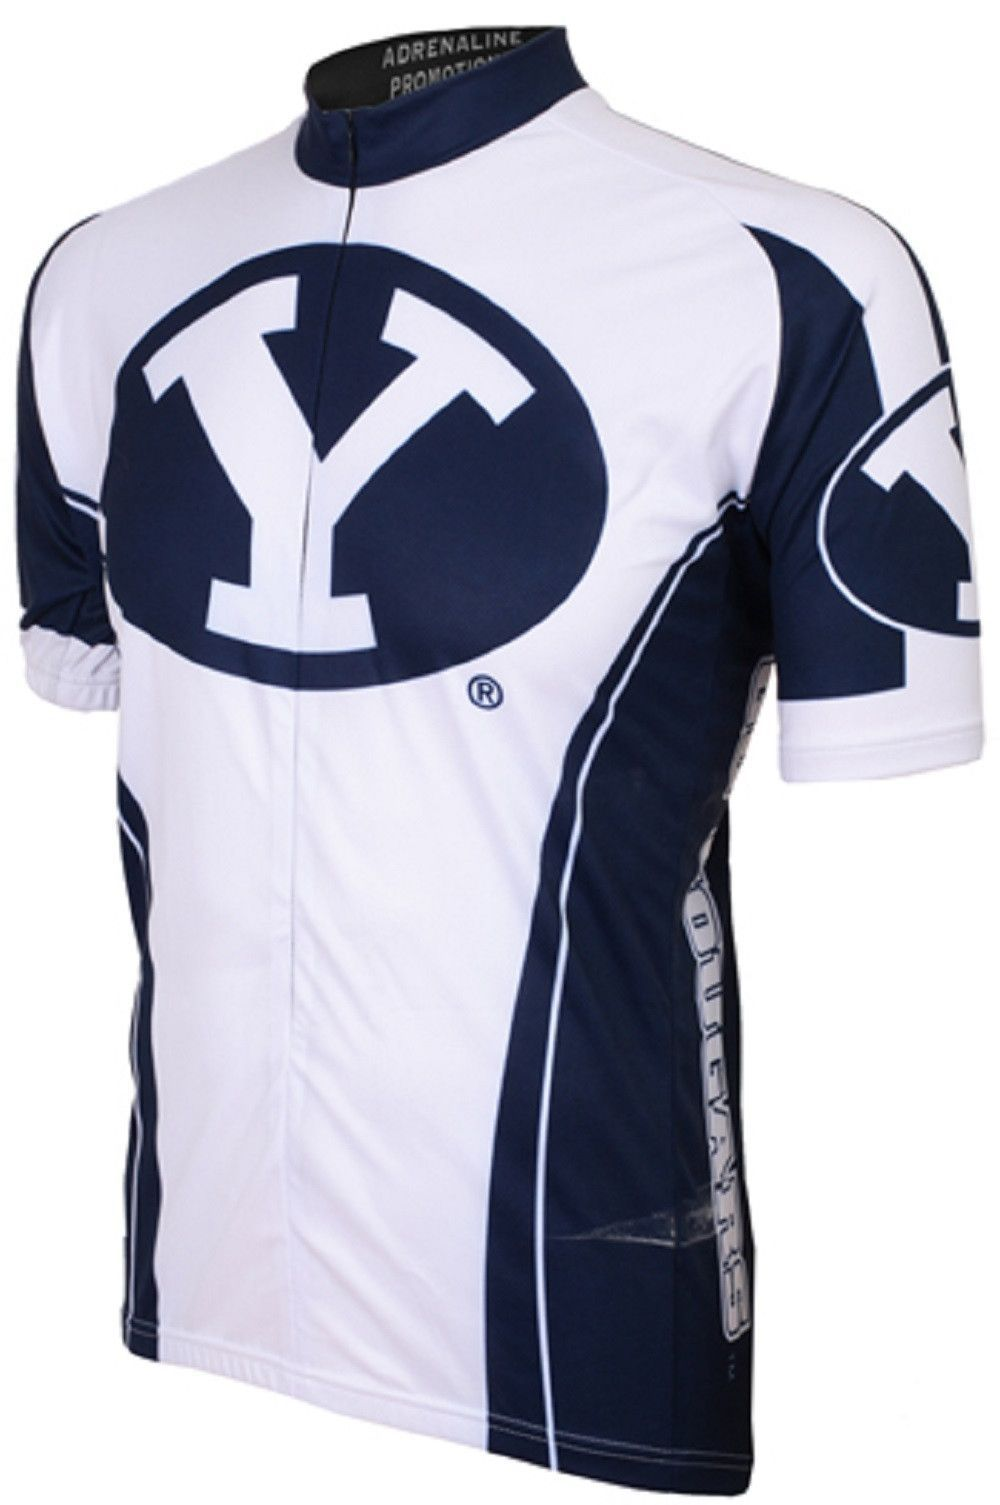 13bd8c864ae NCAA Men s Adrenaline Promotions BYU Cougars Road Cycling Jersey ...